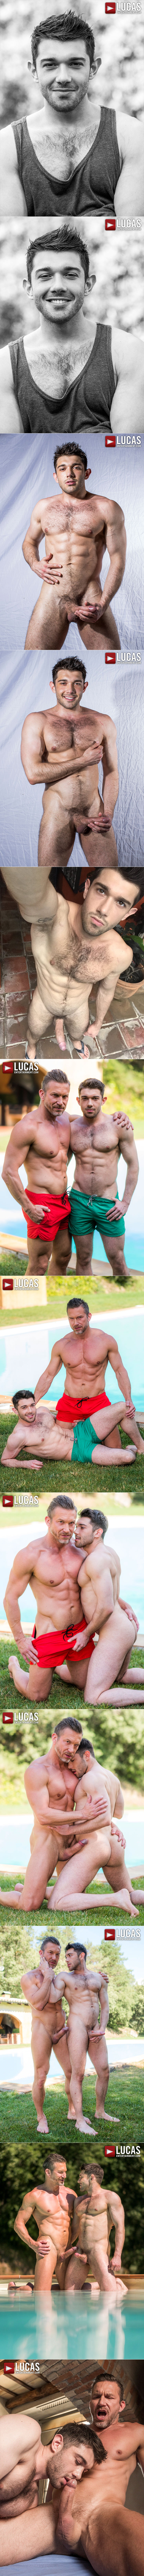 Lucas Entertainment Bareback Auditions 09 Eager To Please Raw Flip-fuck with Ben Batemen Tomas Brand Male Feet Hairy Chest Older Young Sex 1